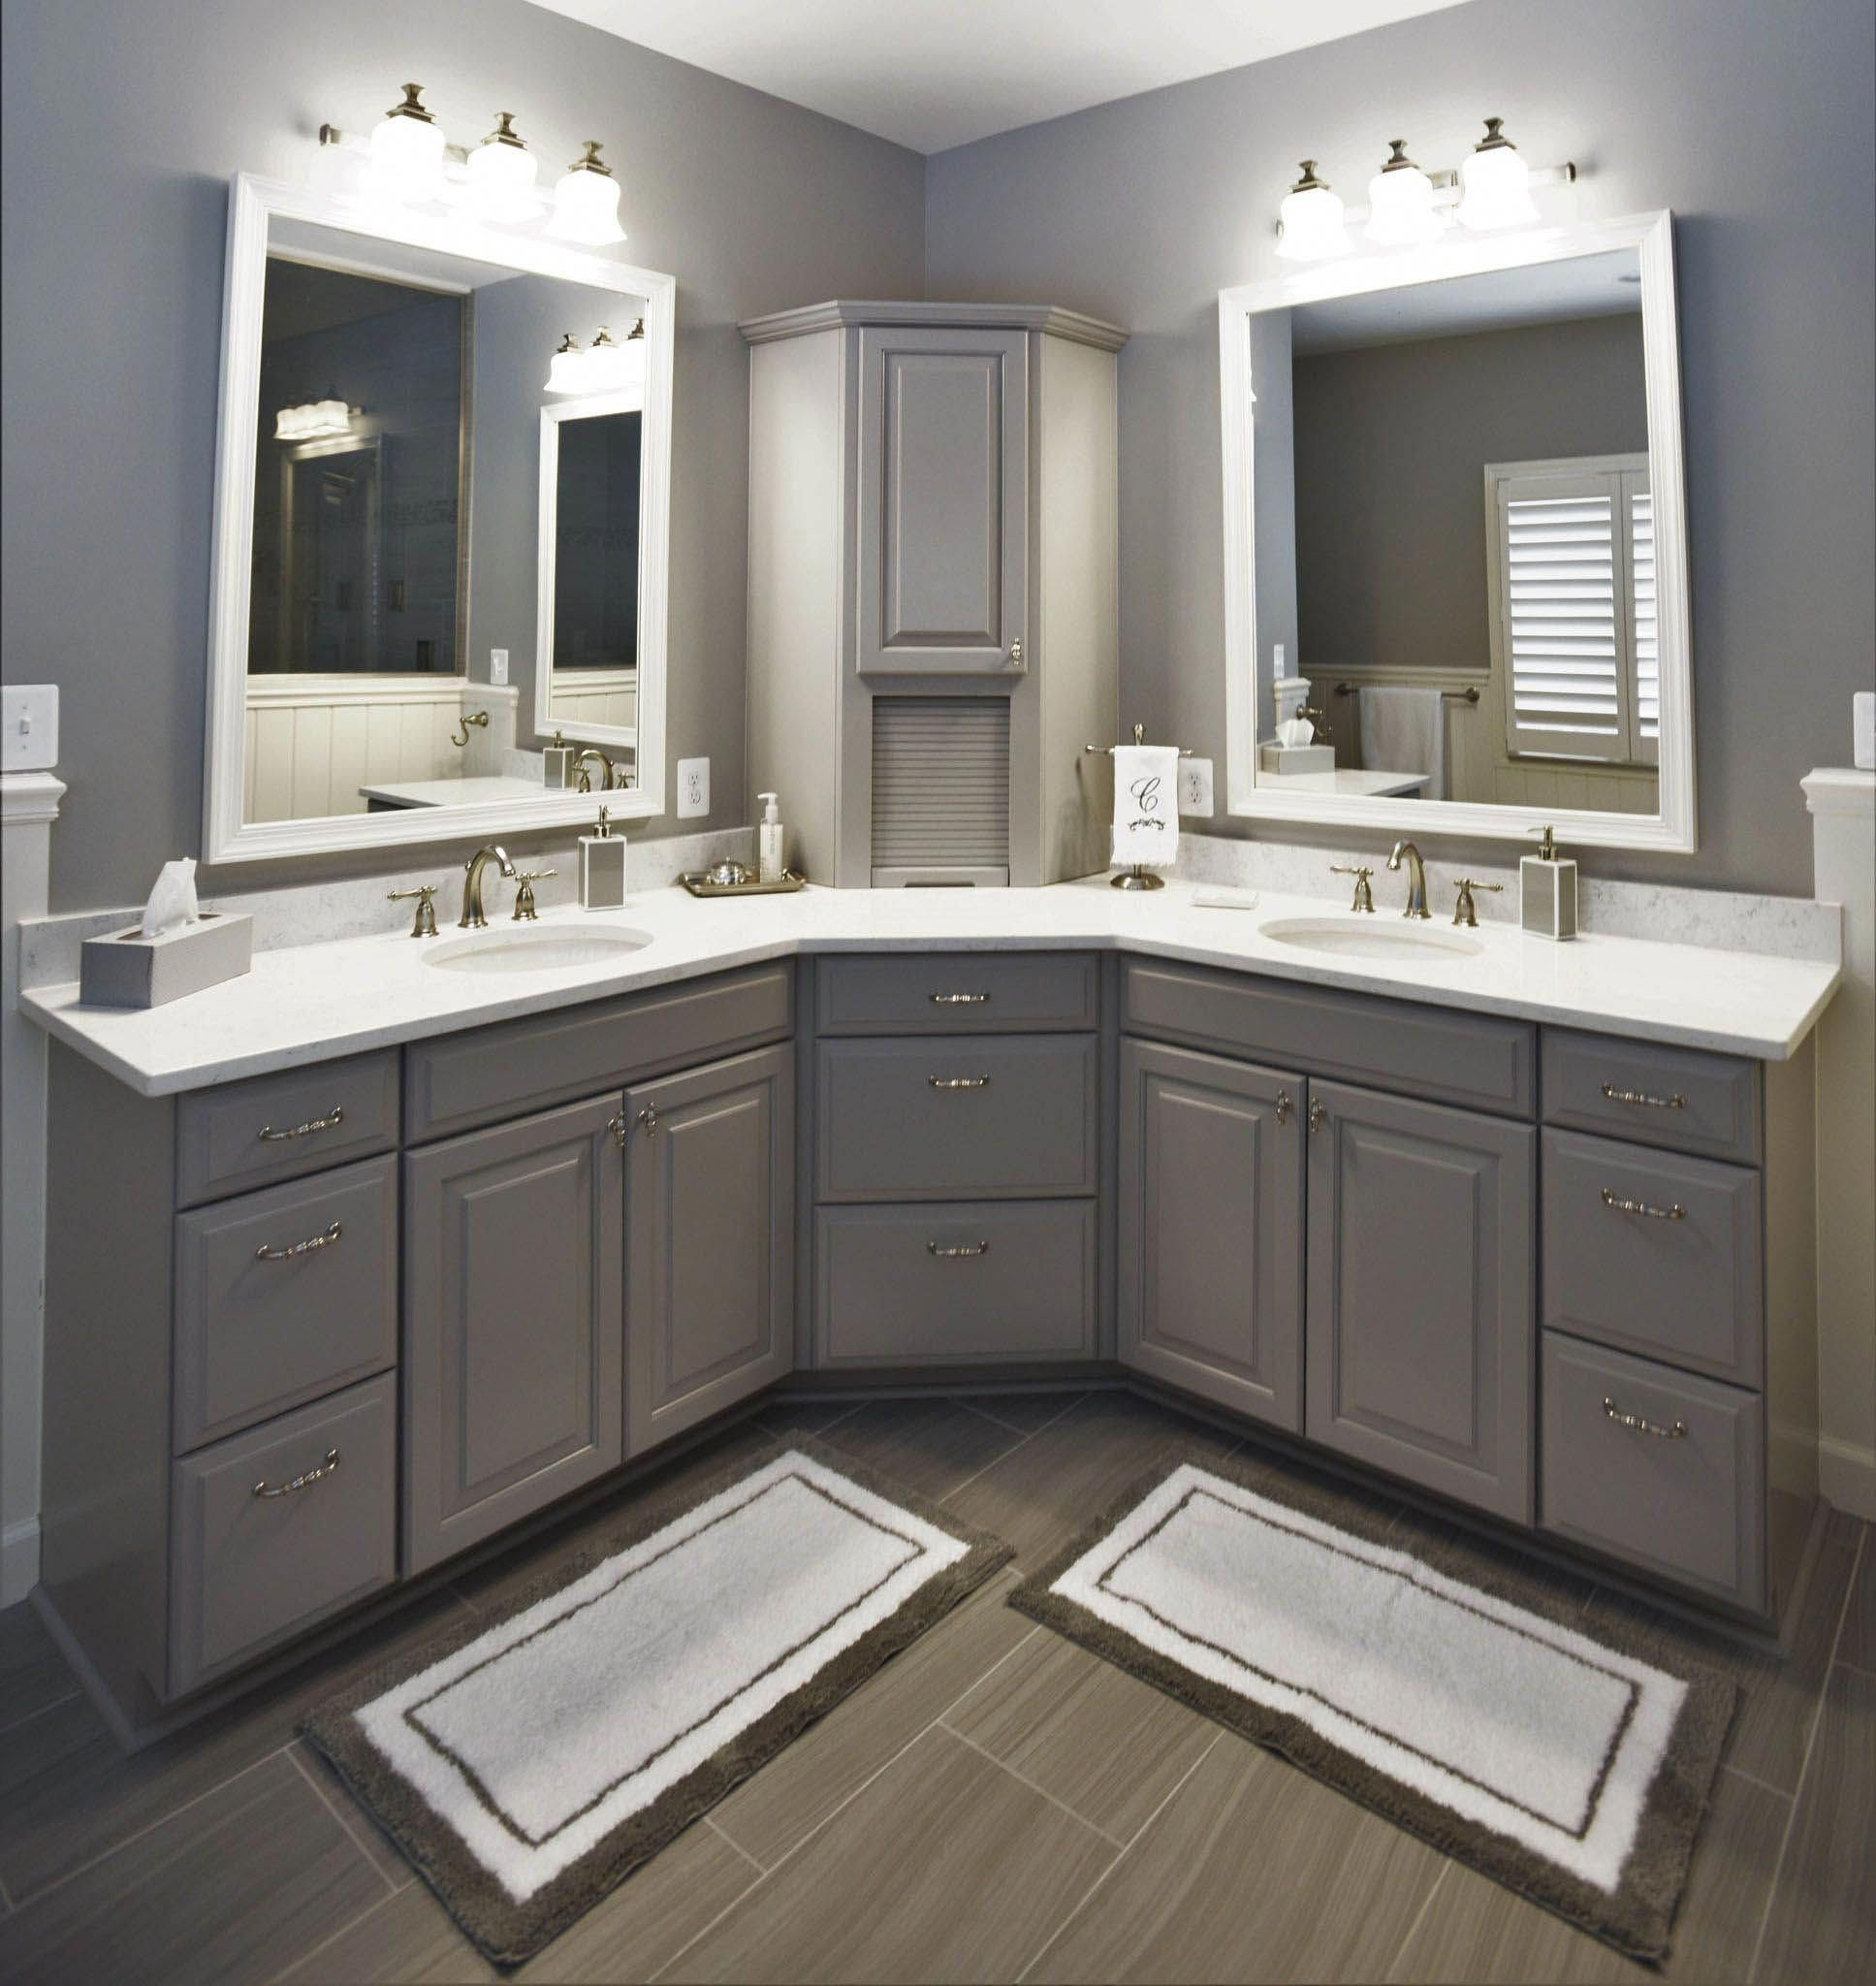 Good Corner Bathroom Vanity Menards To Refresh Your Home Bathroomvanity Corner Bathroom Vanity Bathroom Countertops Bathroom Remodel Master